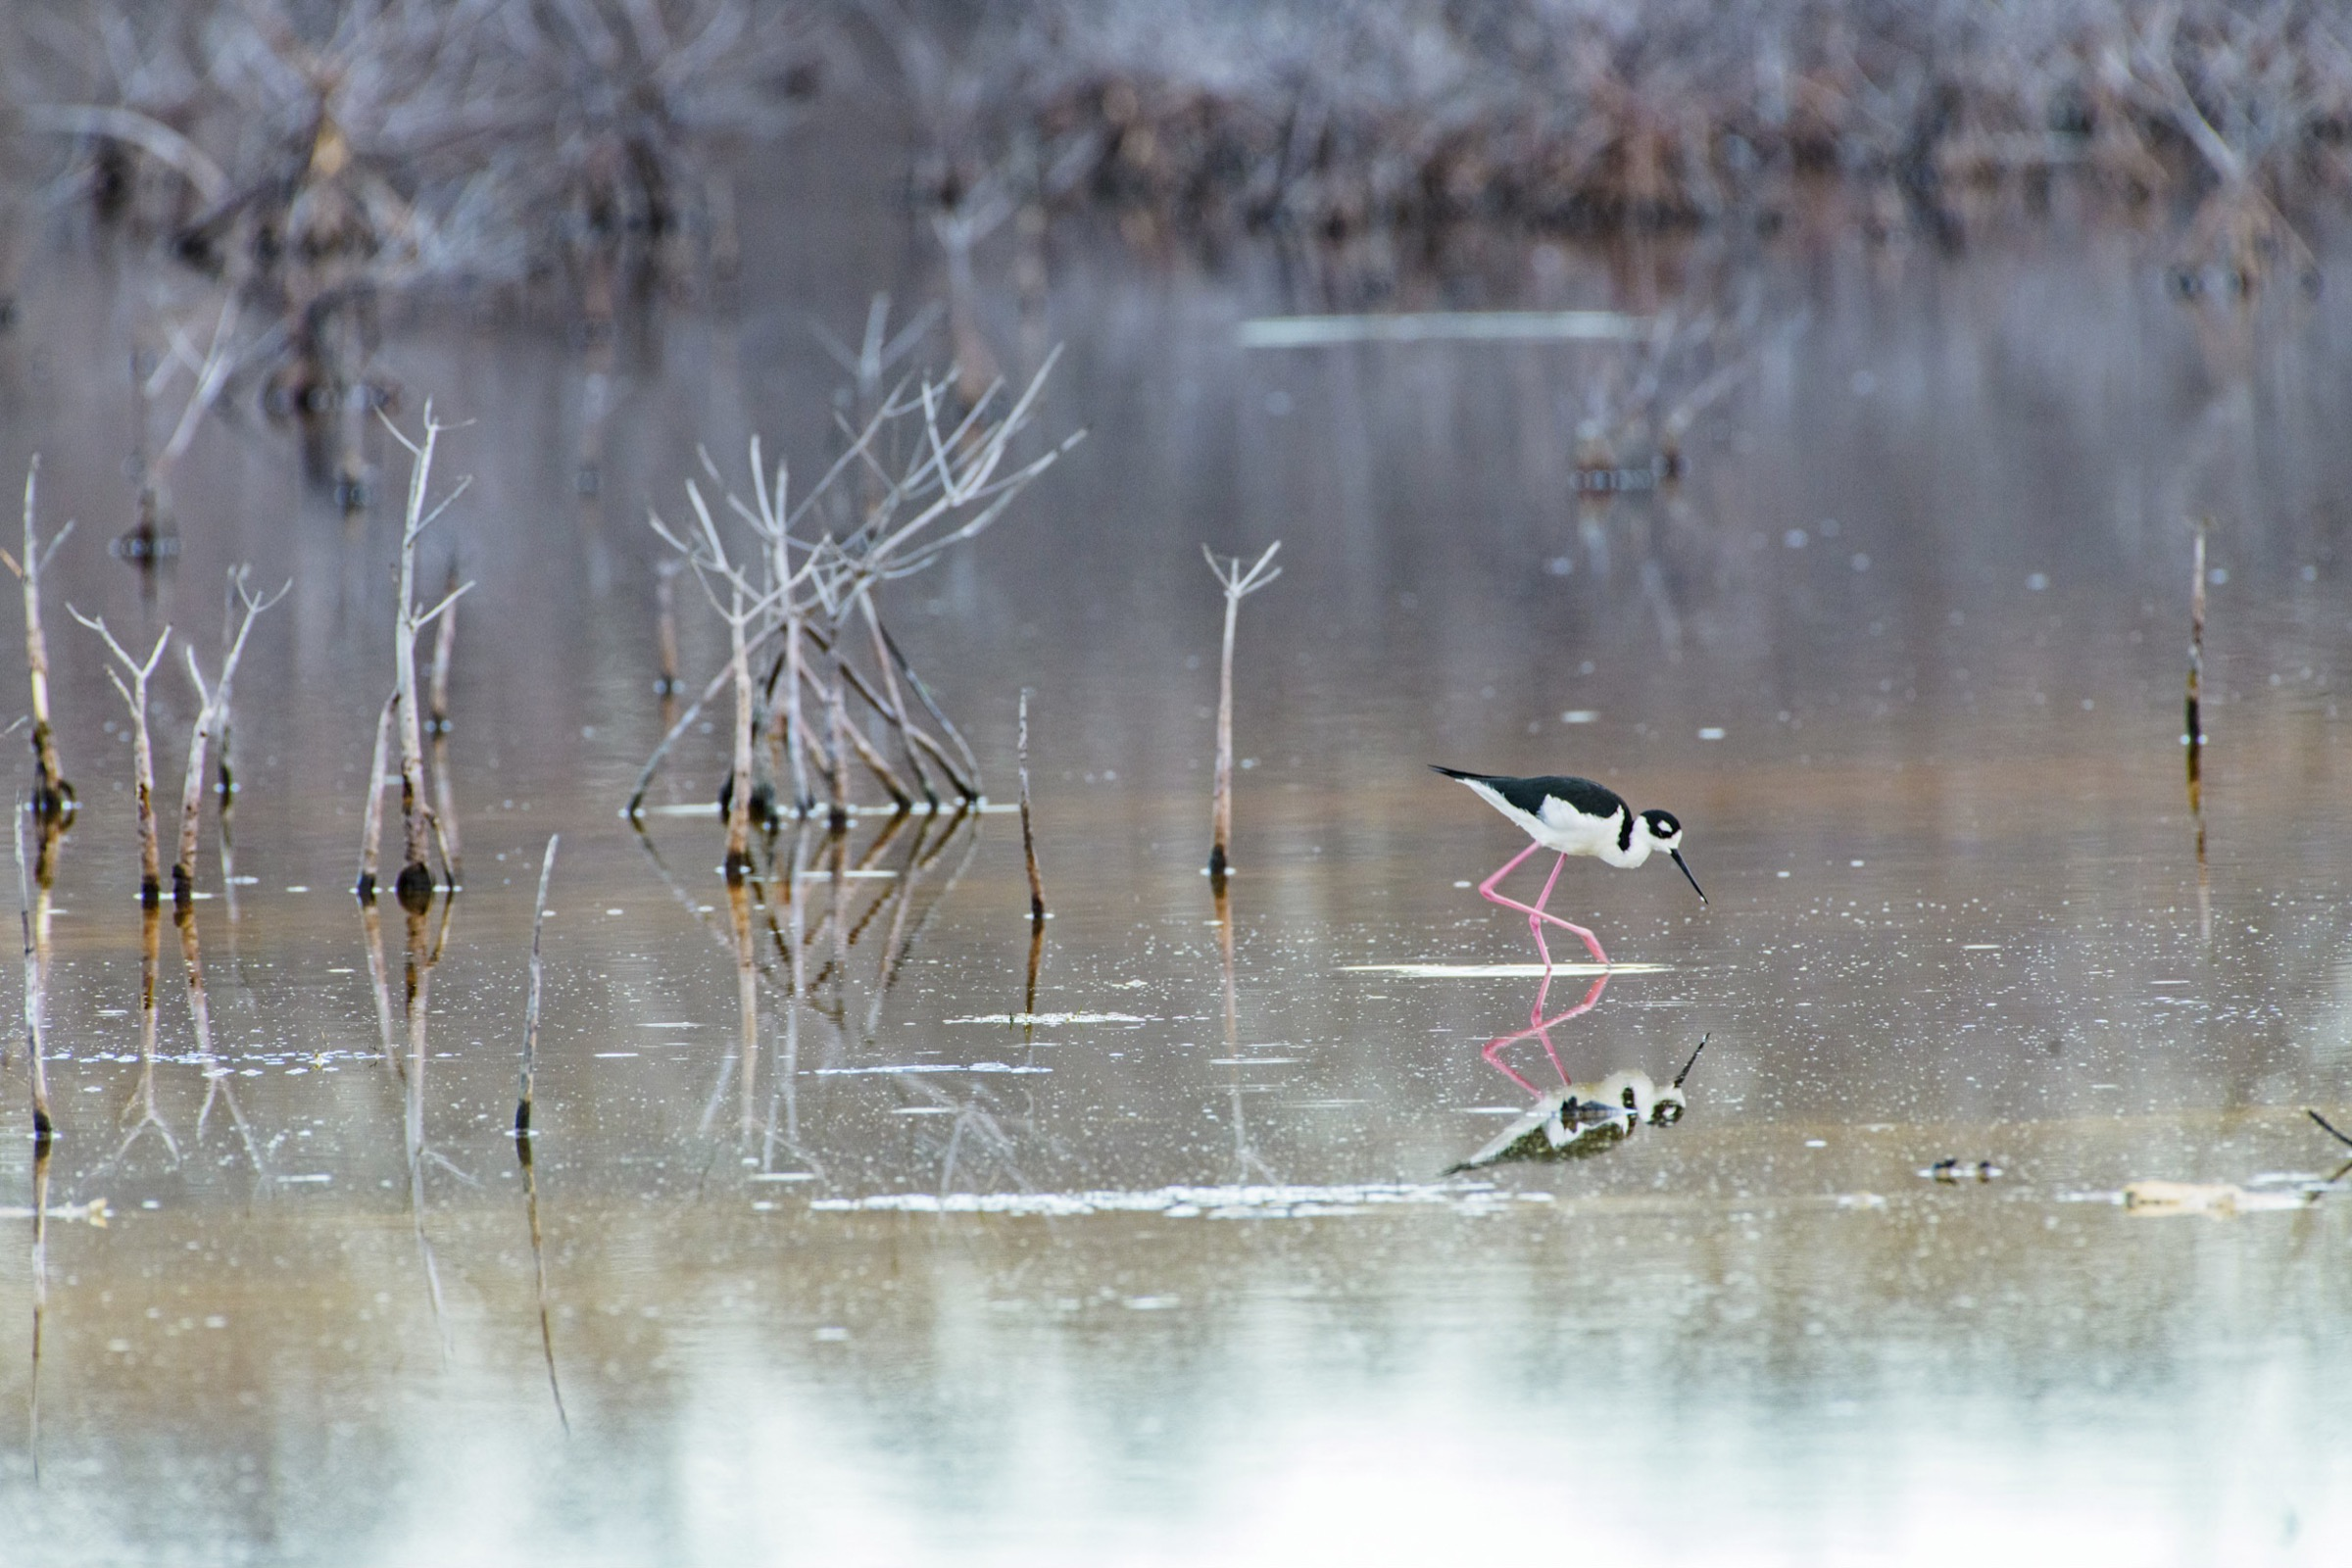 Ciénaga de Zapata National Park is a biosphere reserve, RAMSAR site, and one of the largest wetlands in the Caribbean. This black-winged stilt (Himantopus himantopus) feeding at low tide is one of nearly 200 species of birds found here.